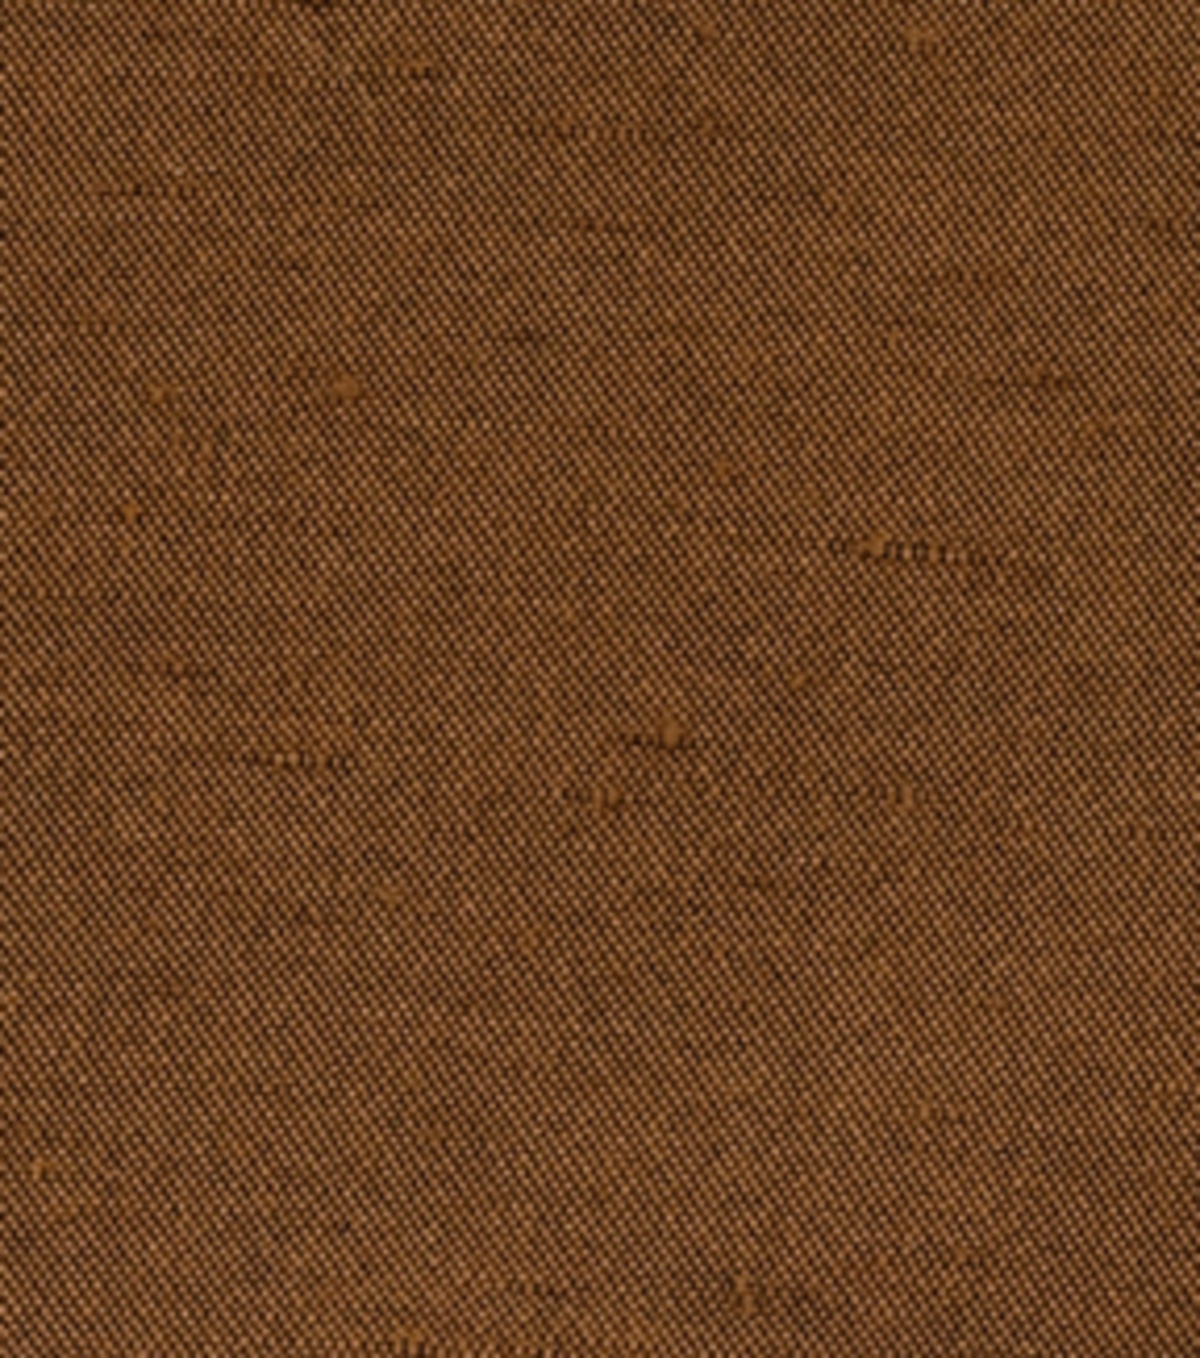 Home Decor 8\u0022x8\u0022 Fabric Swatch-Signature Series Antique Satin Penny